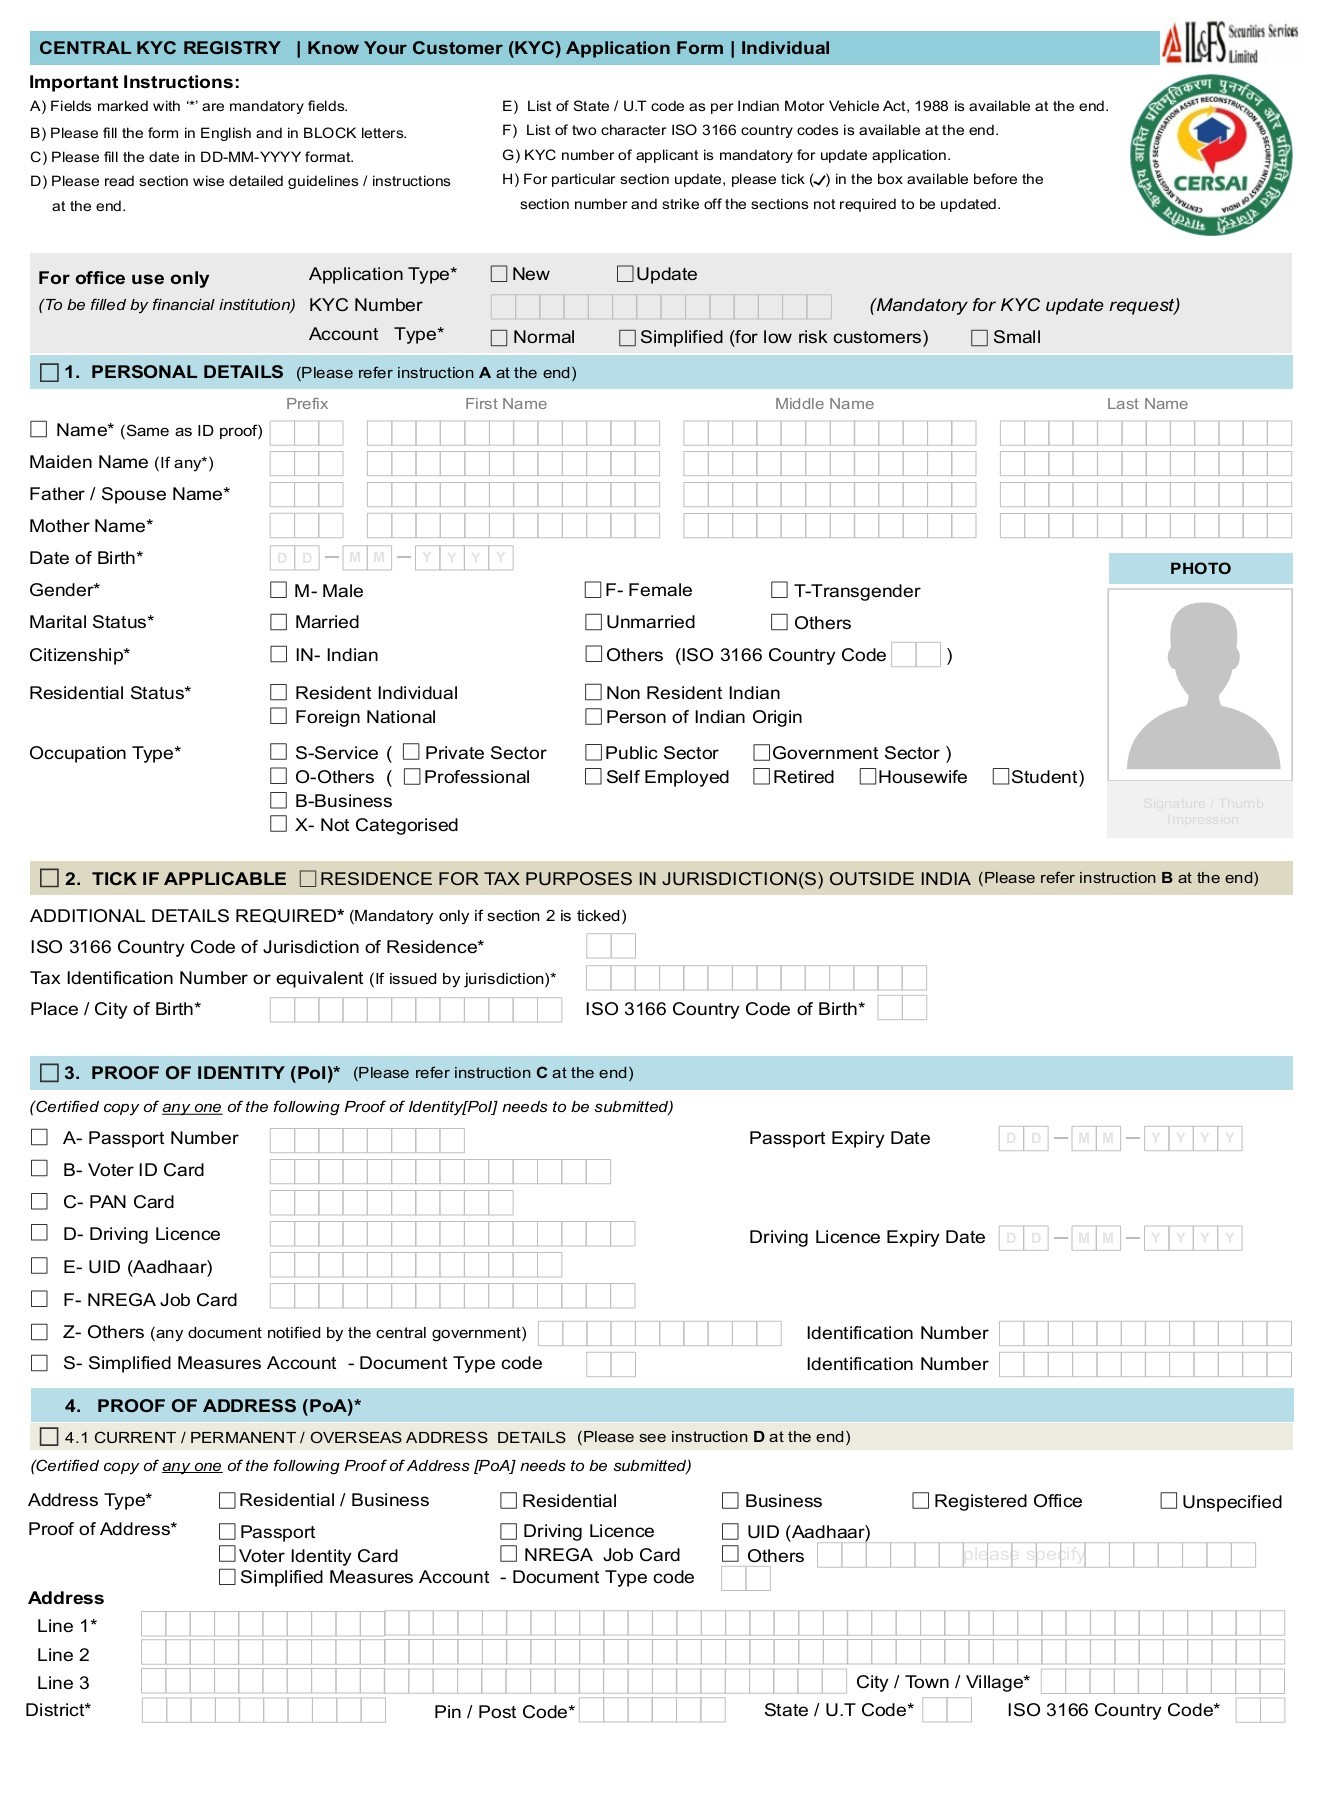 Central Kyc Registry Know Your Customer Application Form Individual